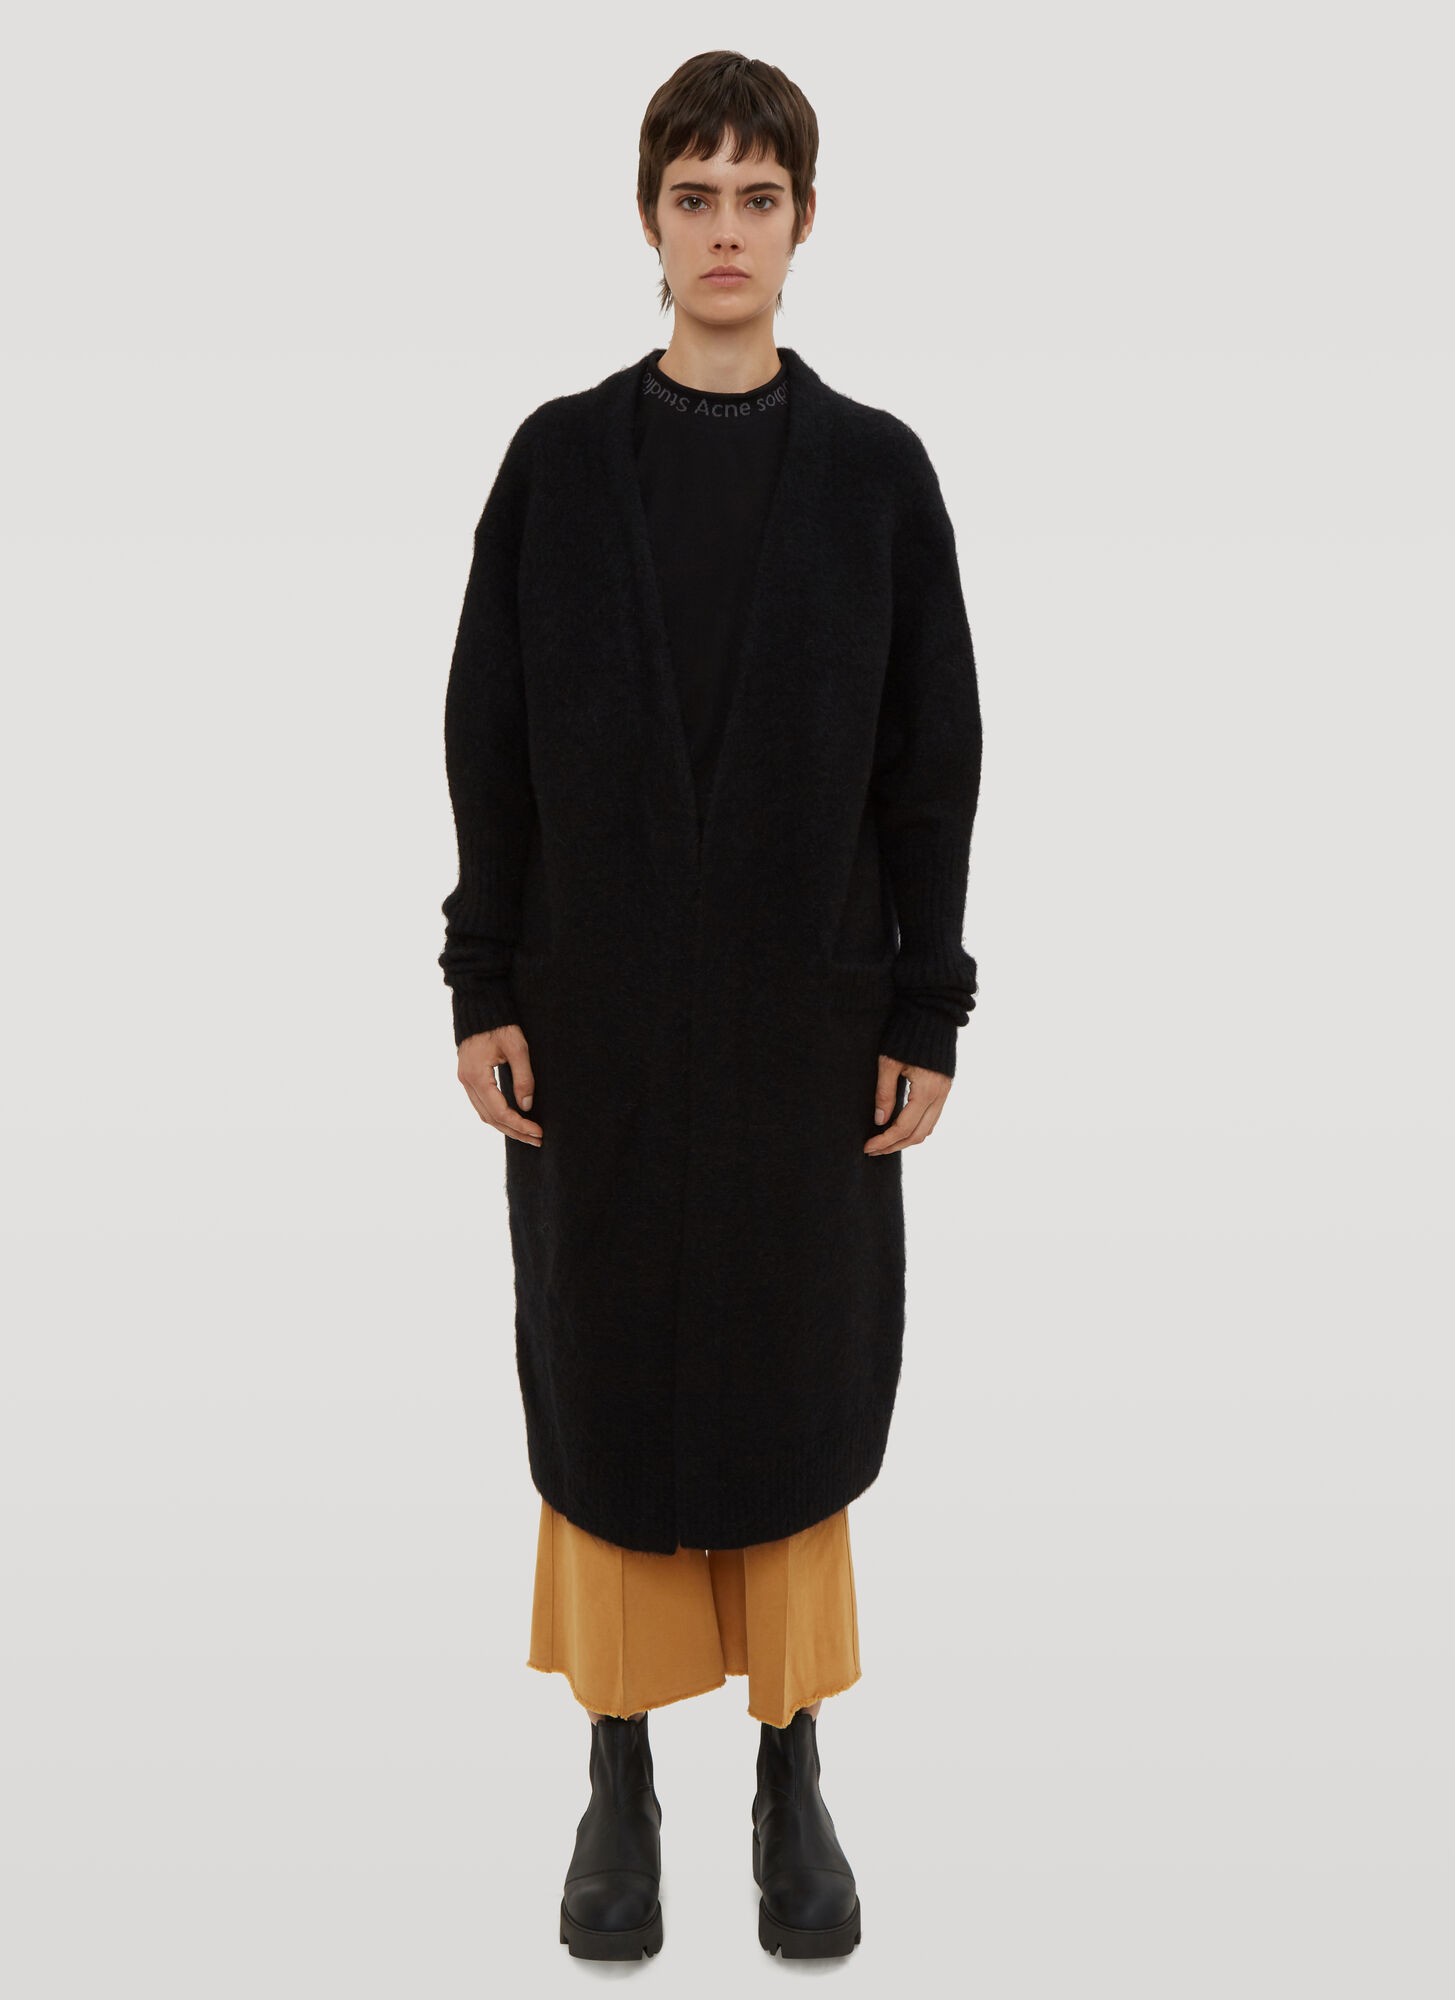 Photo of Acne Studios Raya Mohair Cardigan in Black - Acne Studios Knitwear